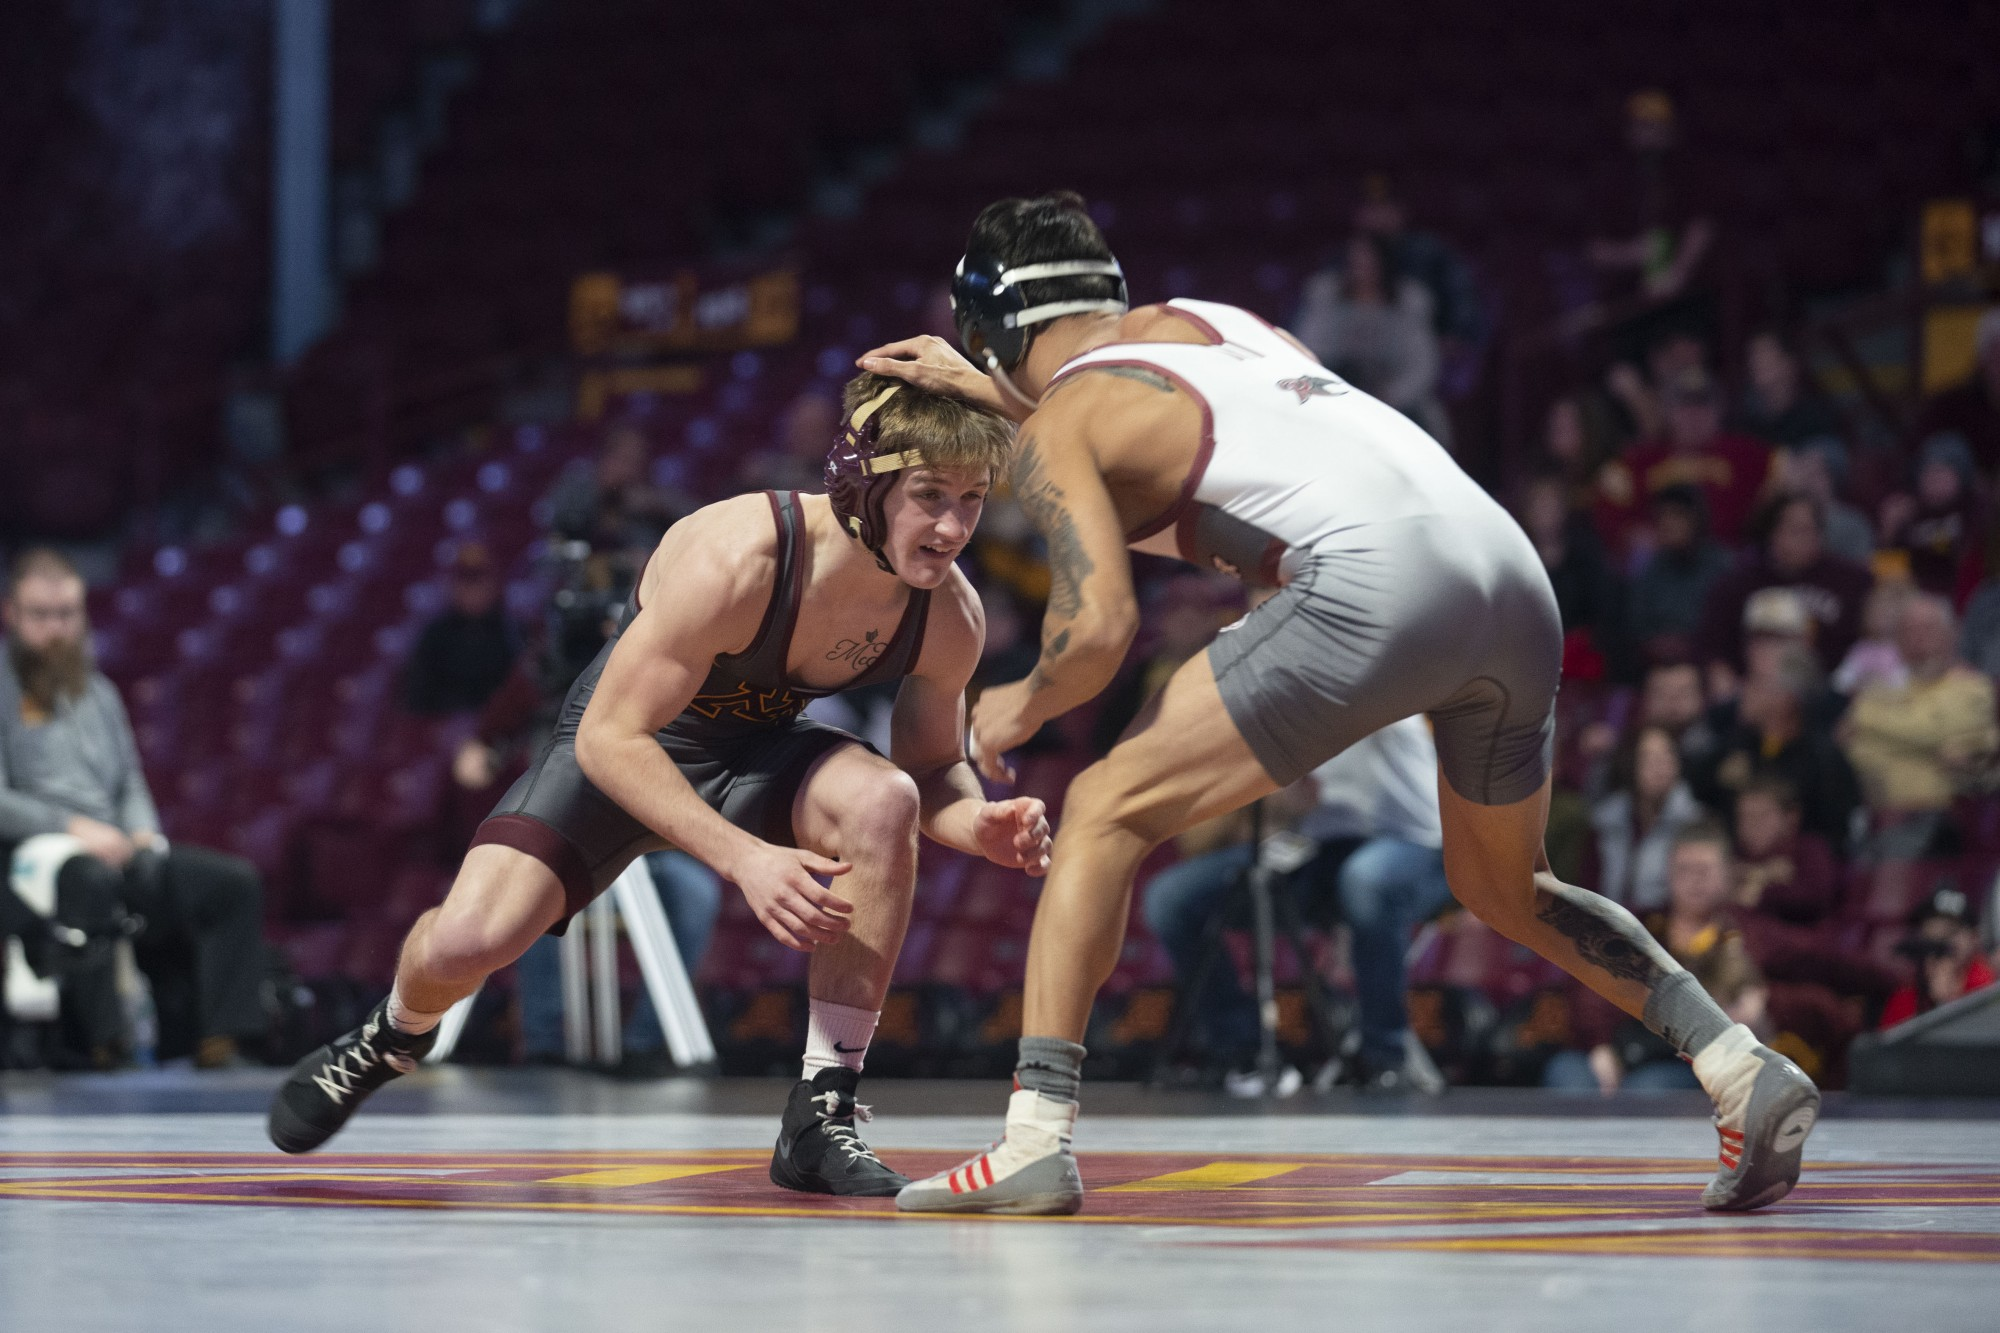 Redshirt Patrick Mckee prepares for a match with an opposing Rider wrestler at Williams Arena on Friday, Nov. 15. The Gophers went on to fall to Rider with a final score of 21-17.